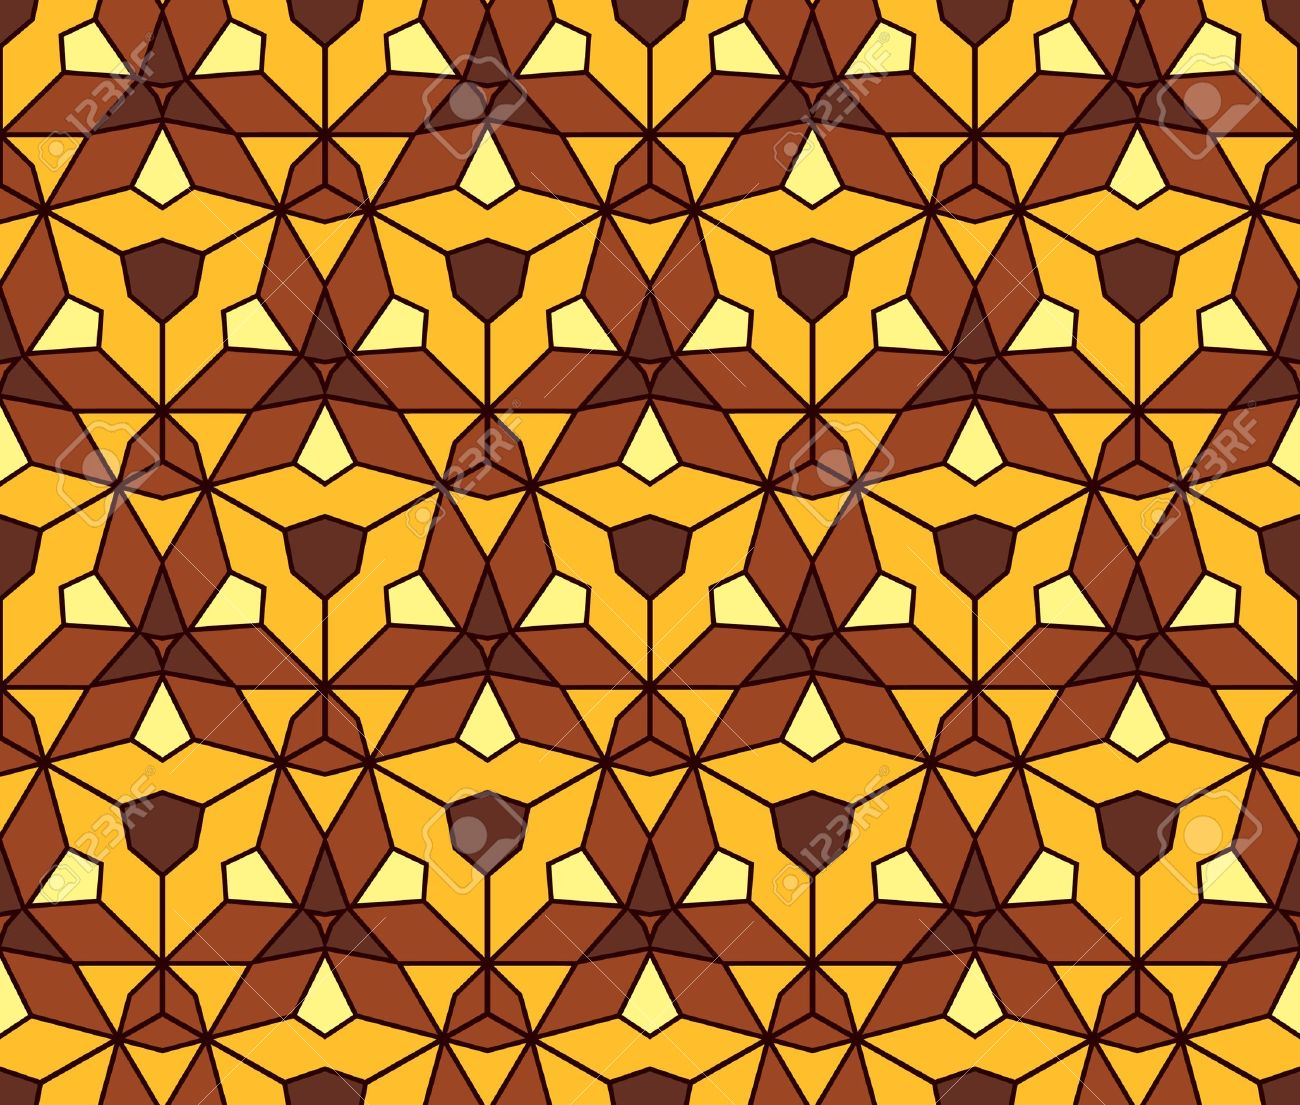 abstract vintage geometric wallpaper pattern seamless background  Vector illustration Stock Vector - 15488294